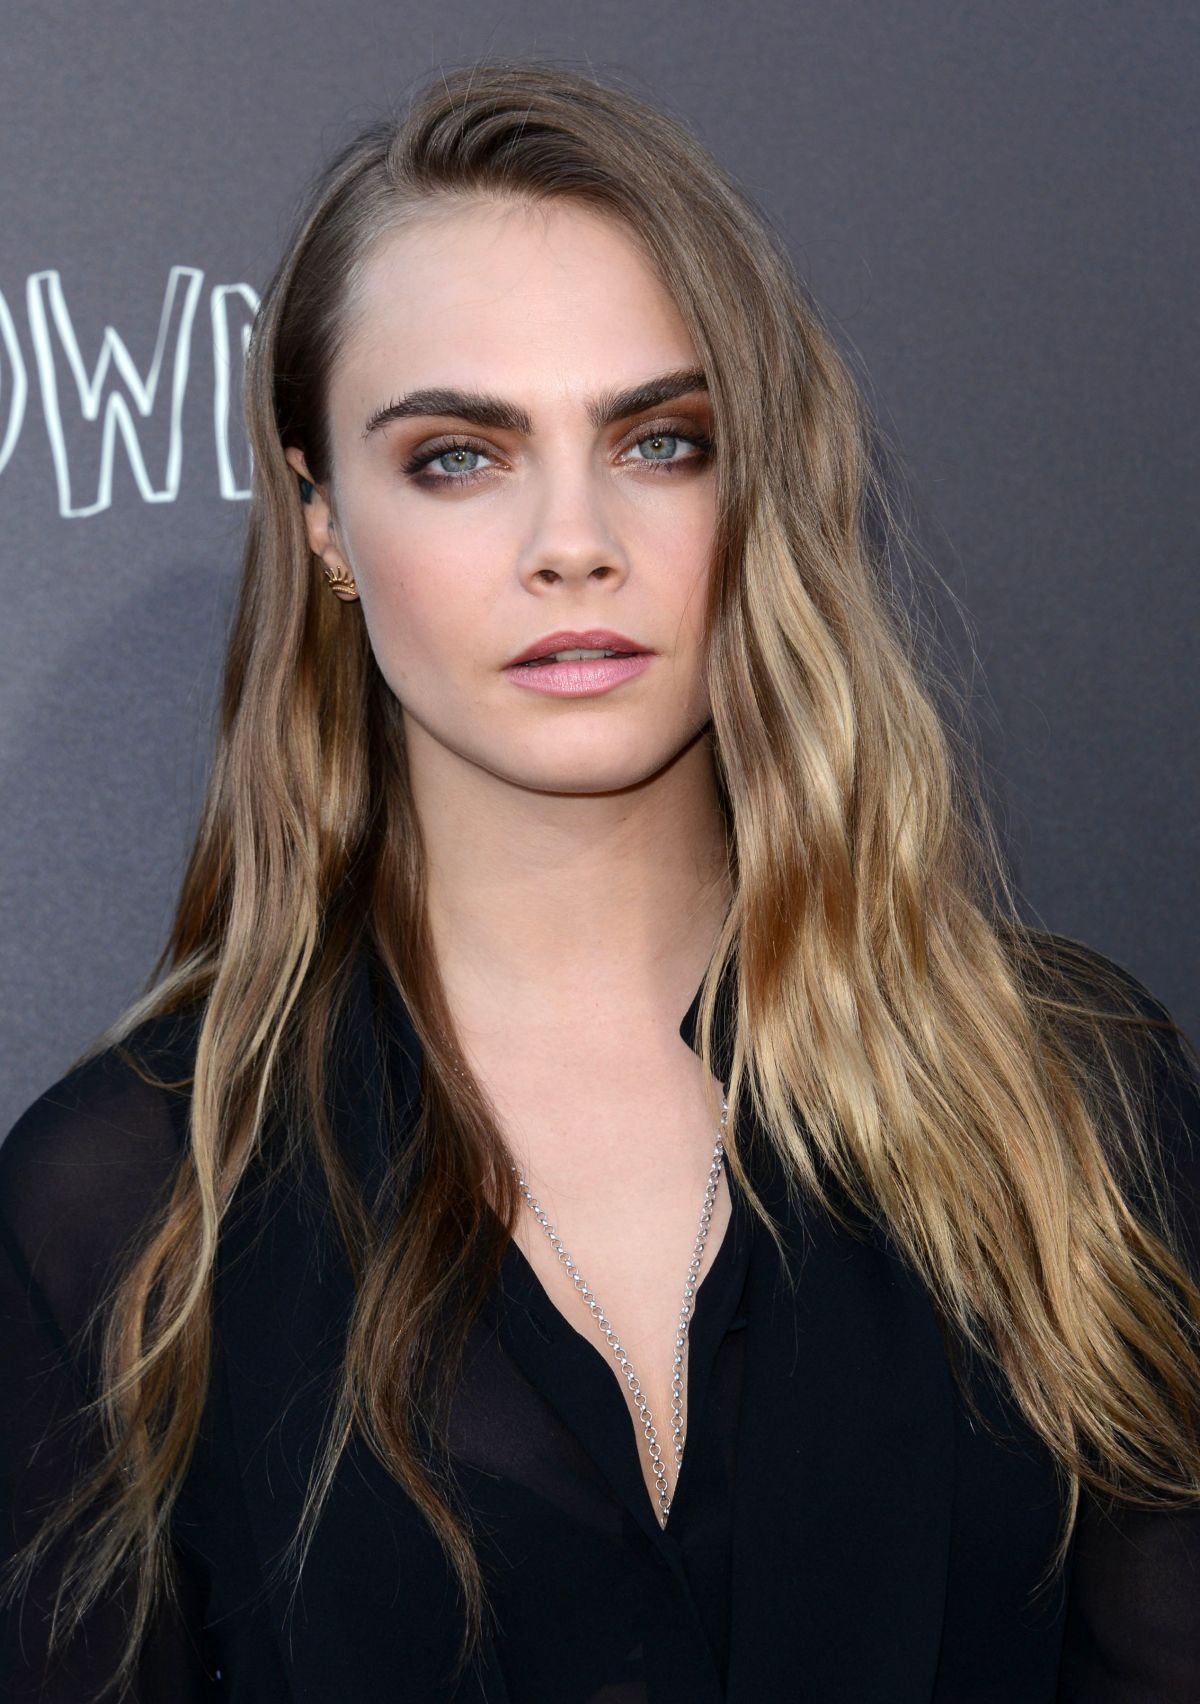 Cara Delevingne At 'Paper Towns' Q&A And Live Concert ...